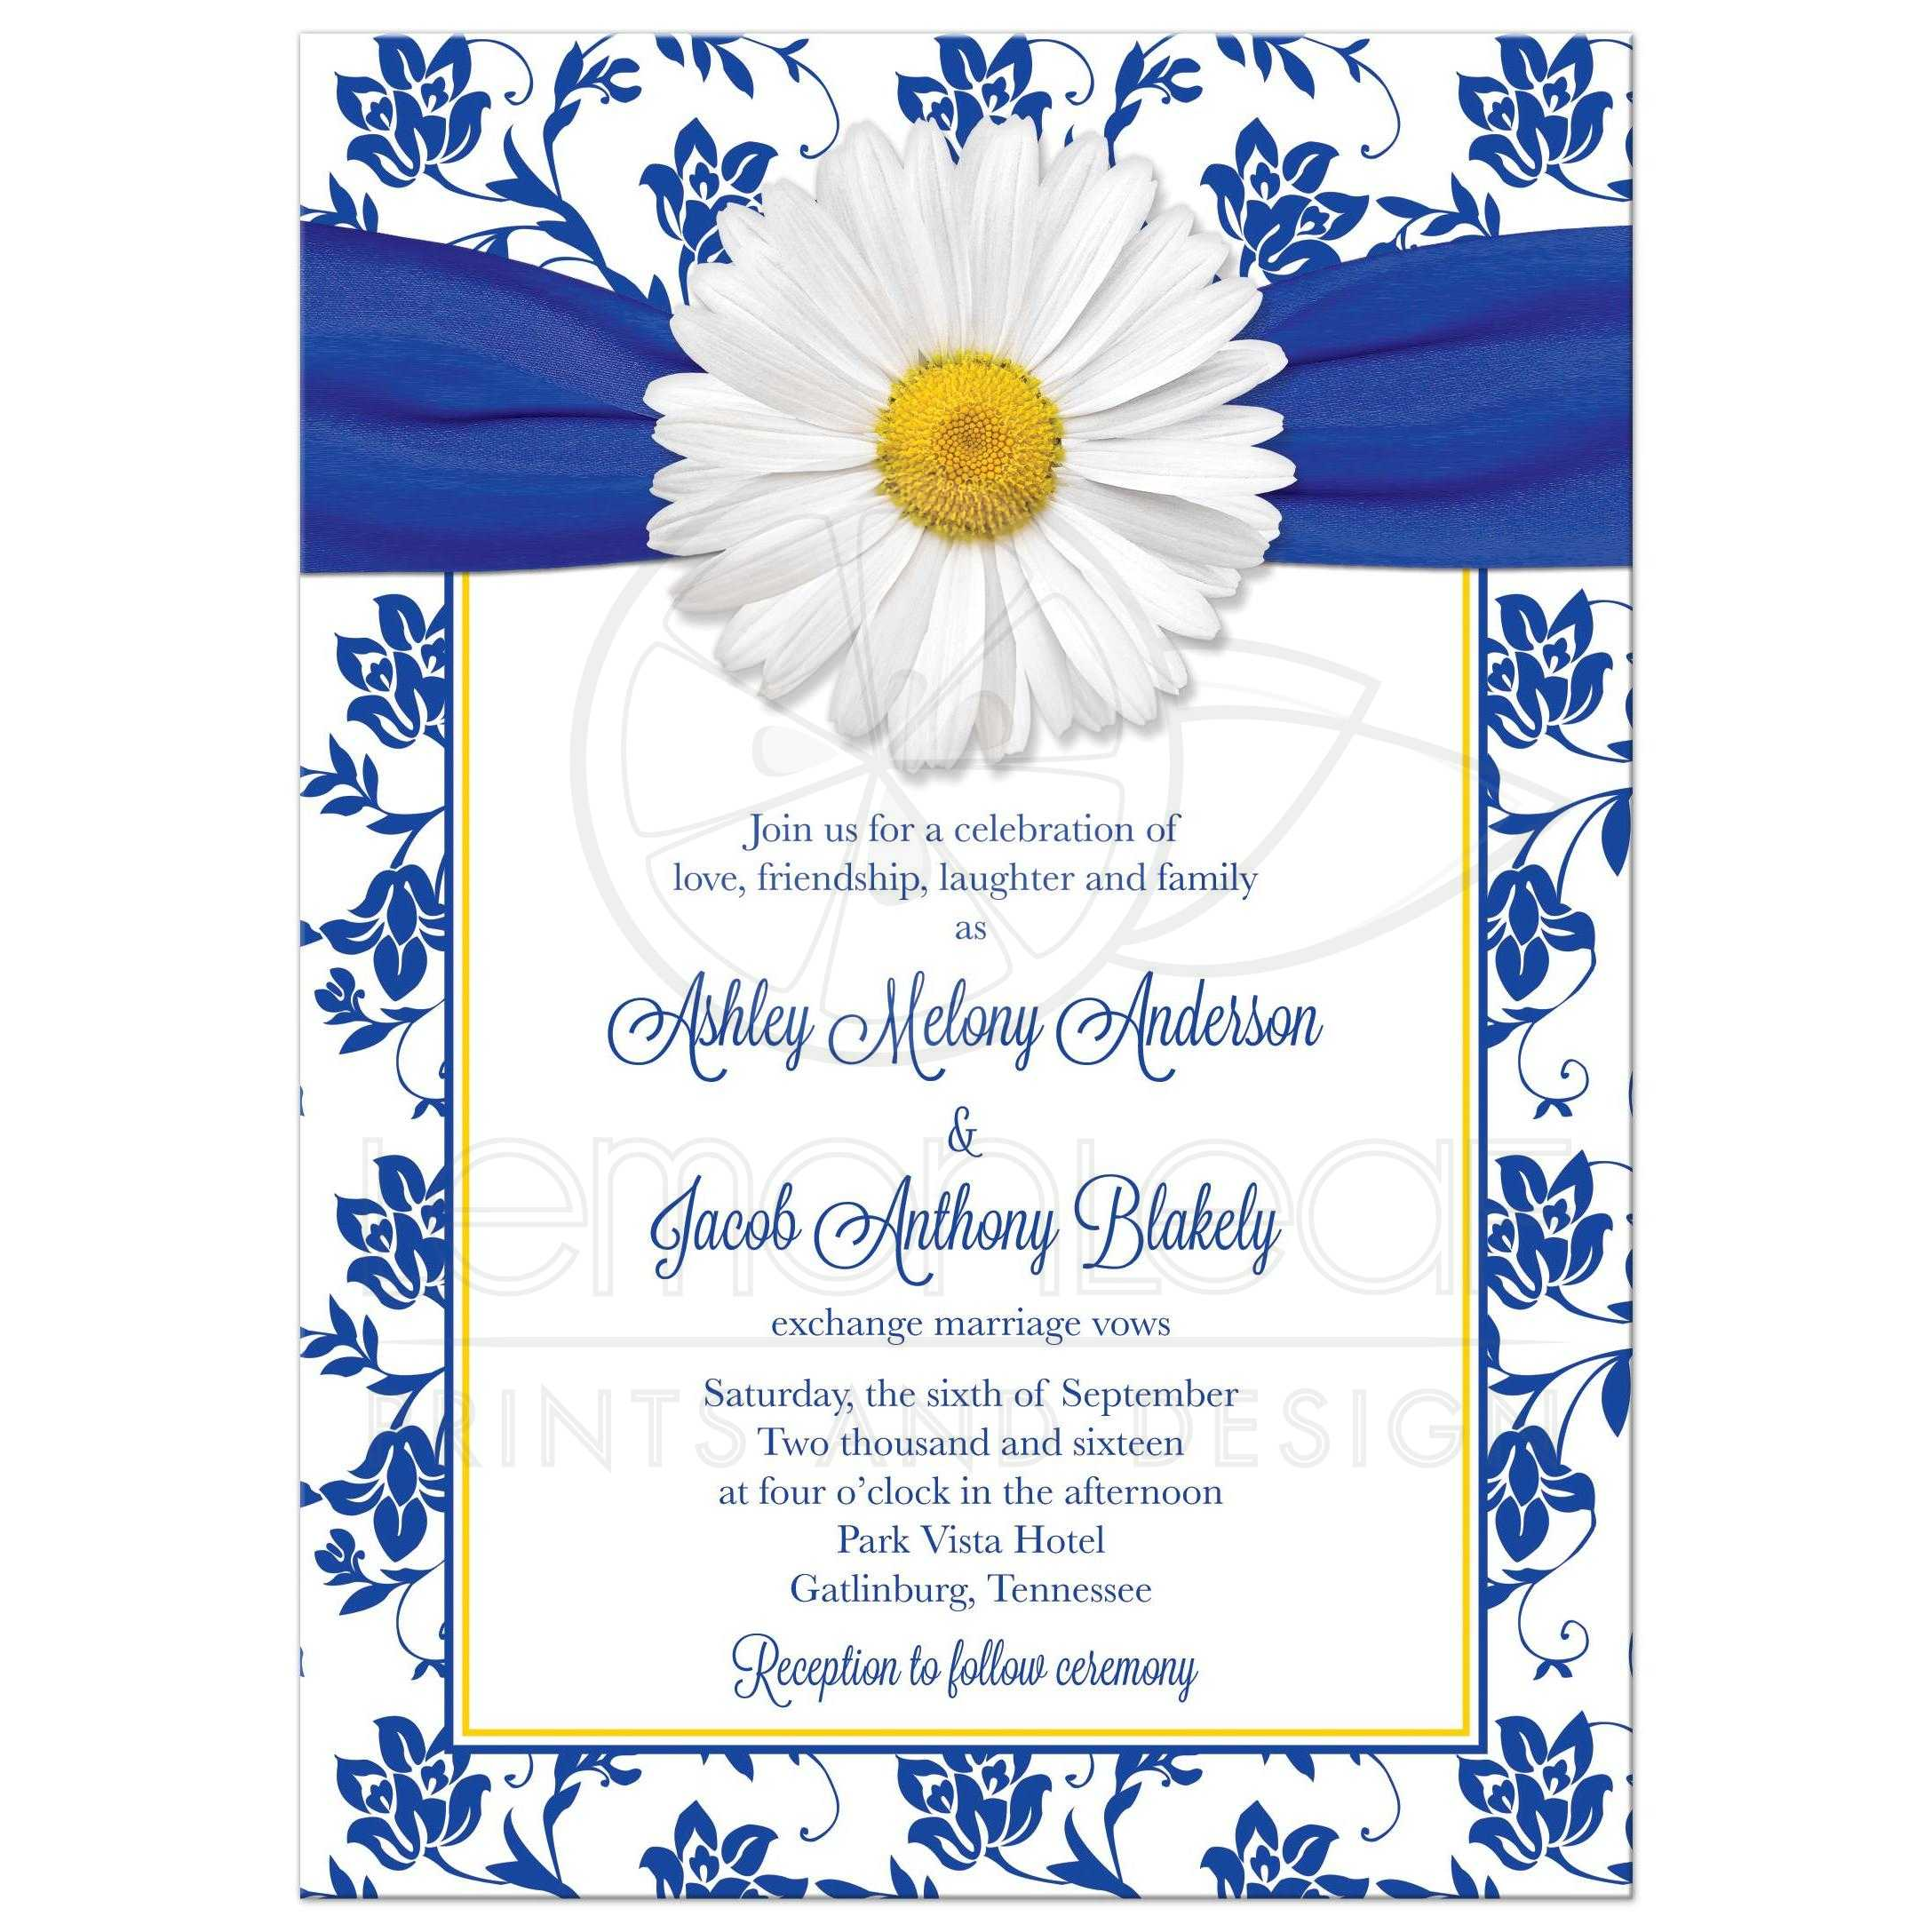 white shasta daisy and royal blue floral damask and ribbon wedding invitation front - Daisy Wedding Invitations